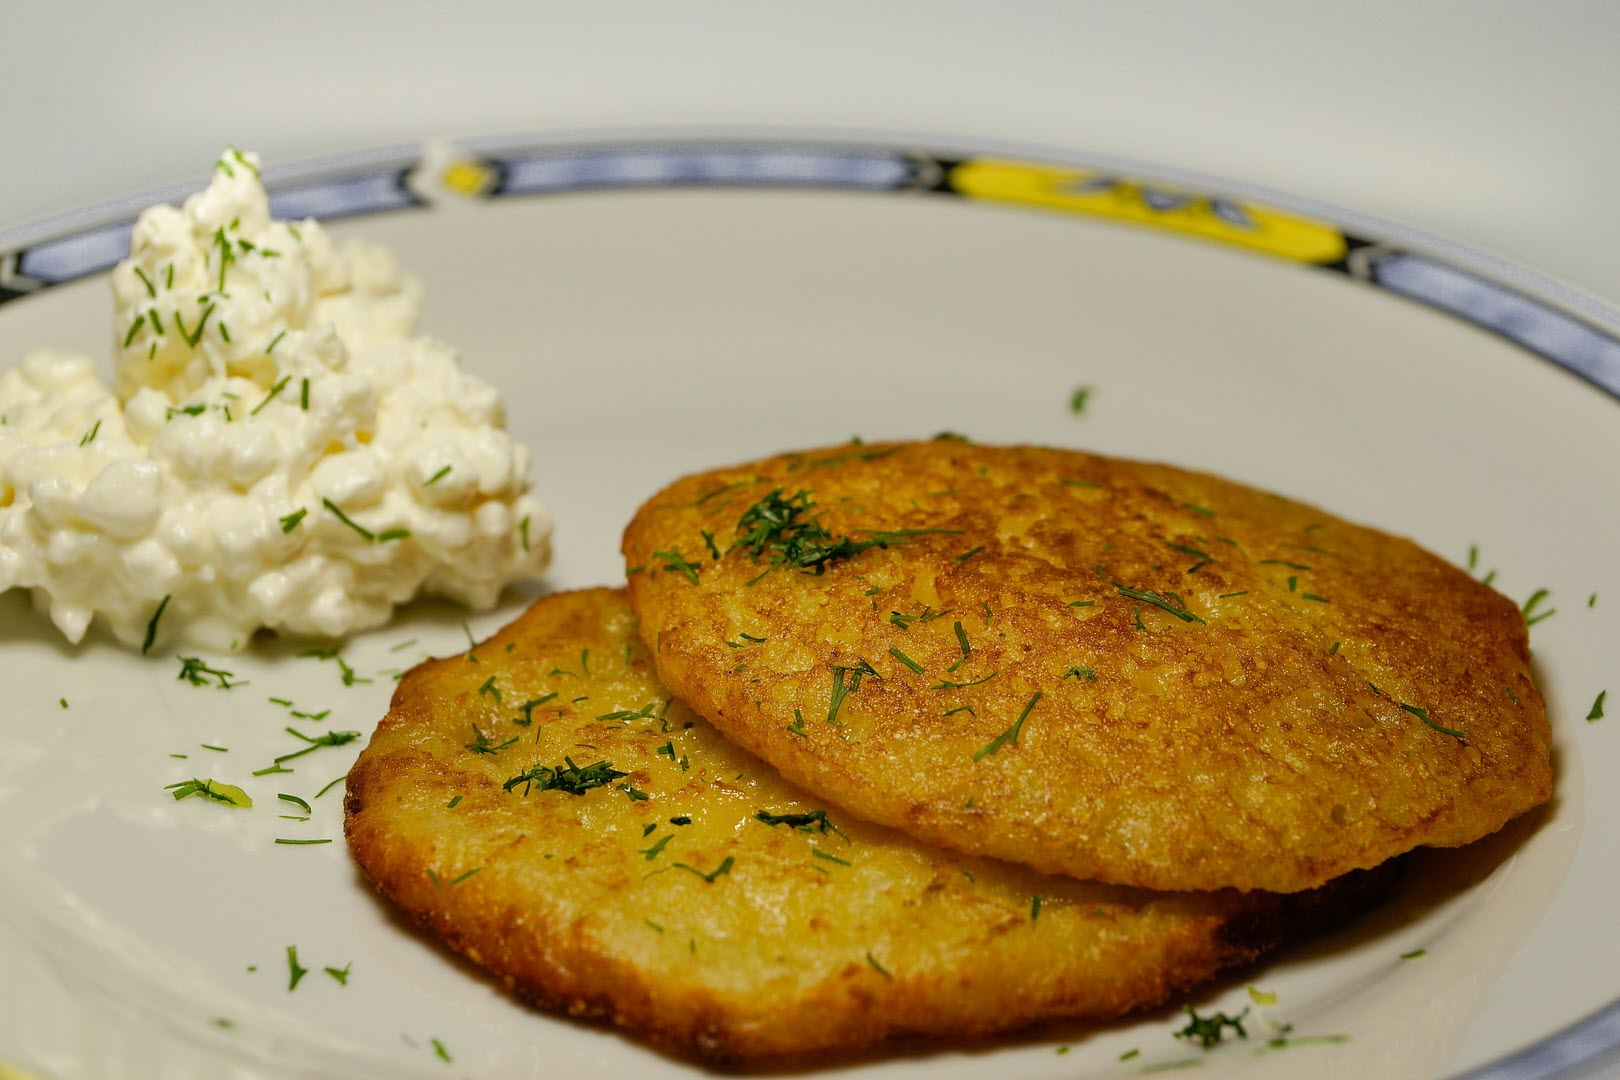 two fried potato pancakes on a plate with sour cream